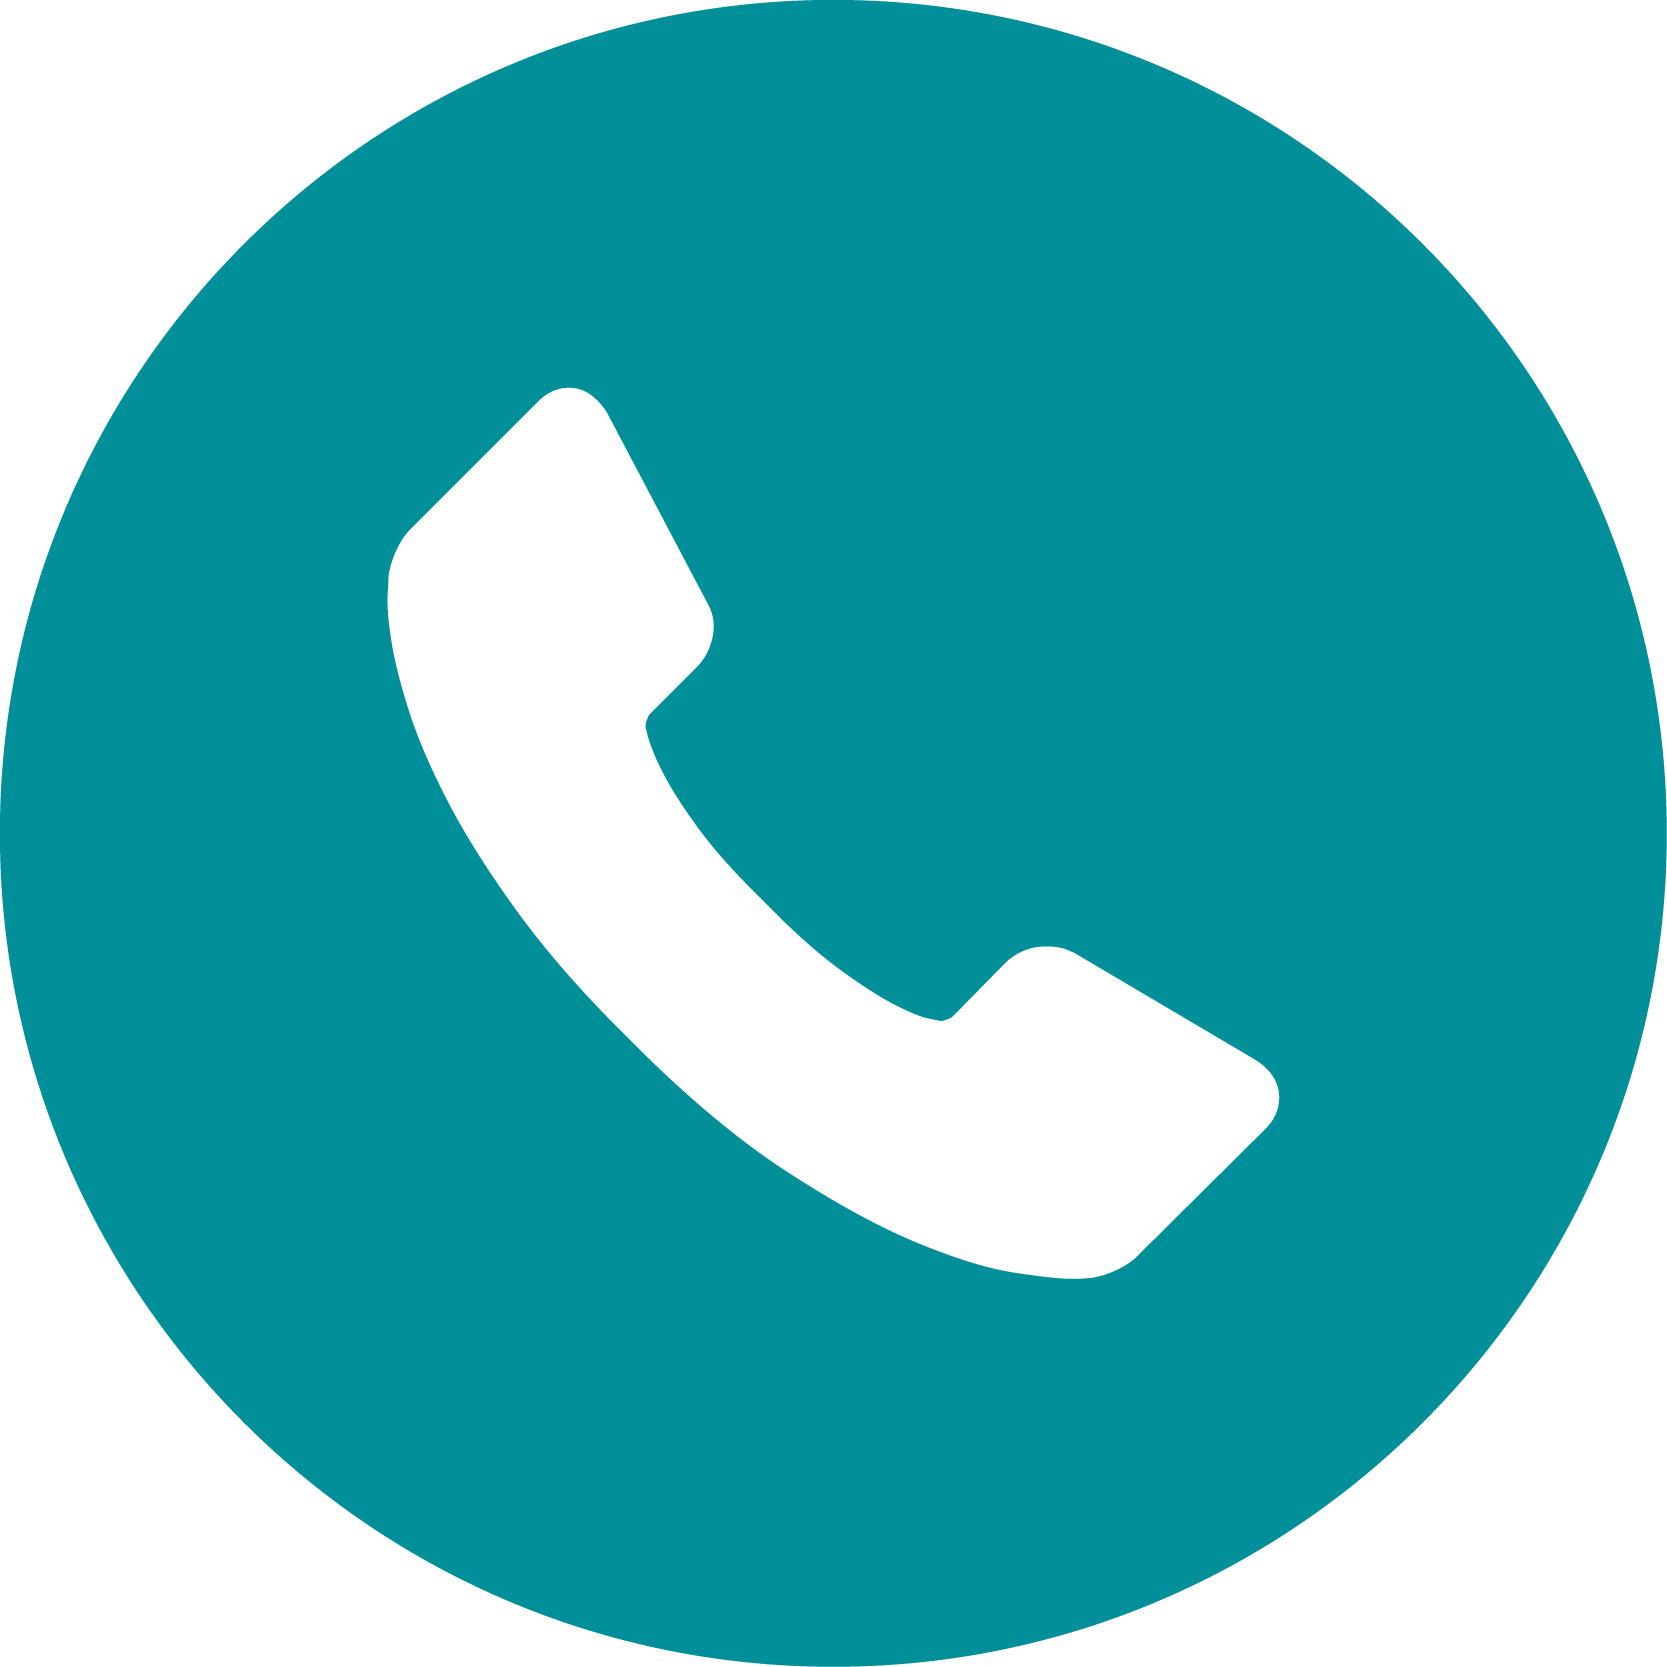 telephone png transparent telephonepng images pluspng